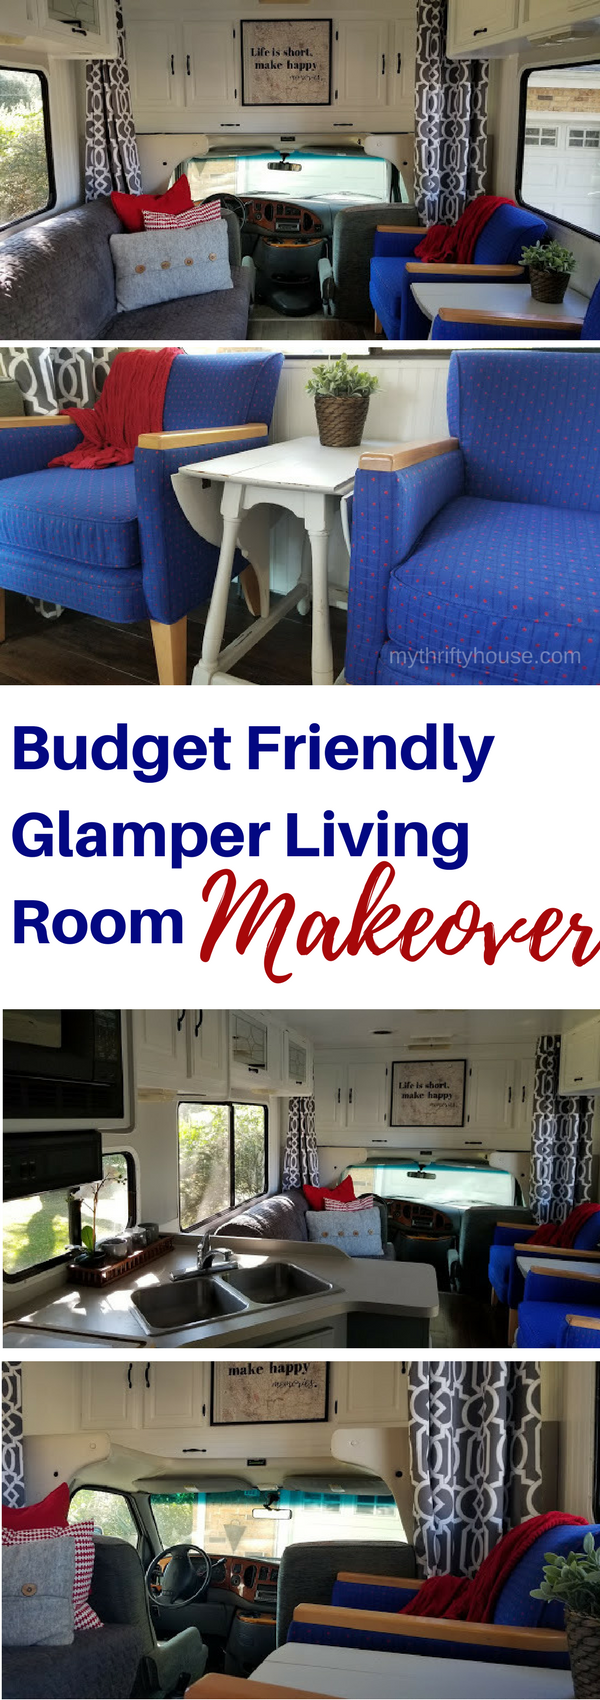 Budget Friendly Glamper Living Room Makeover